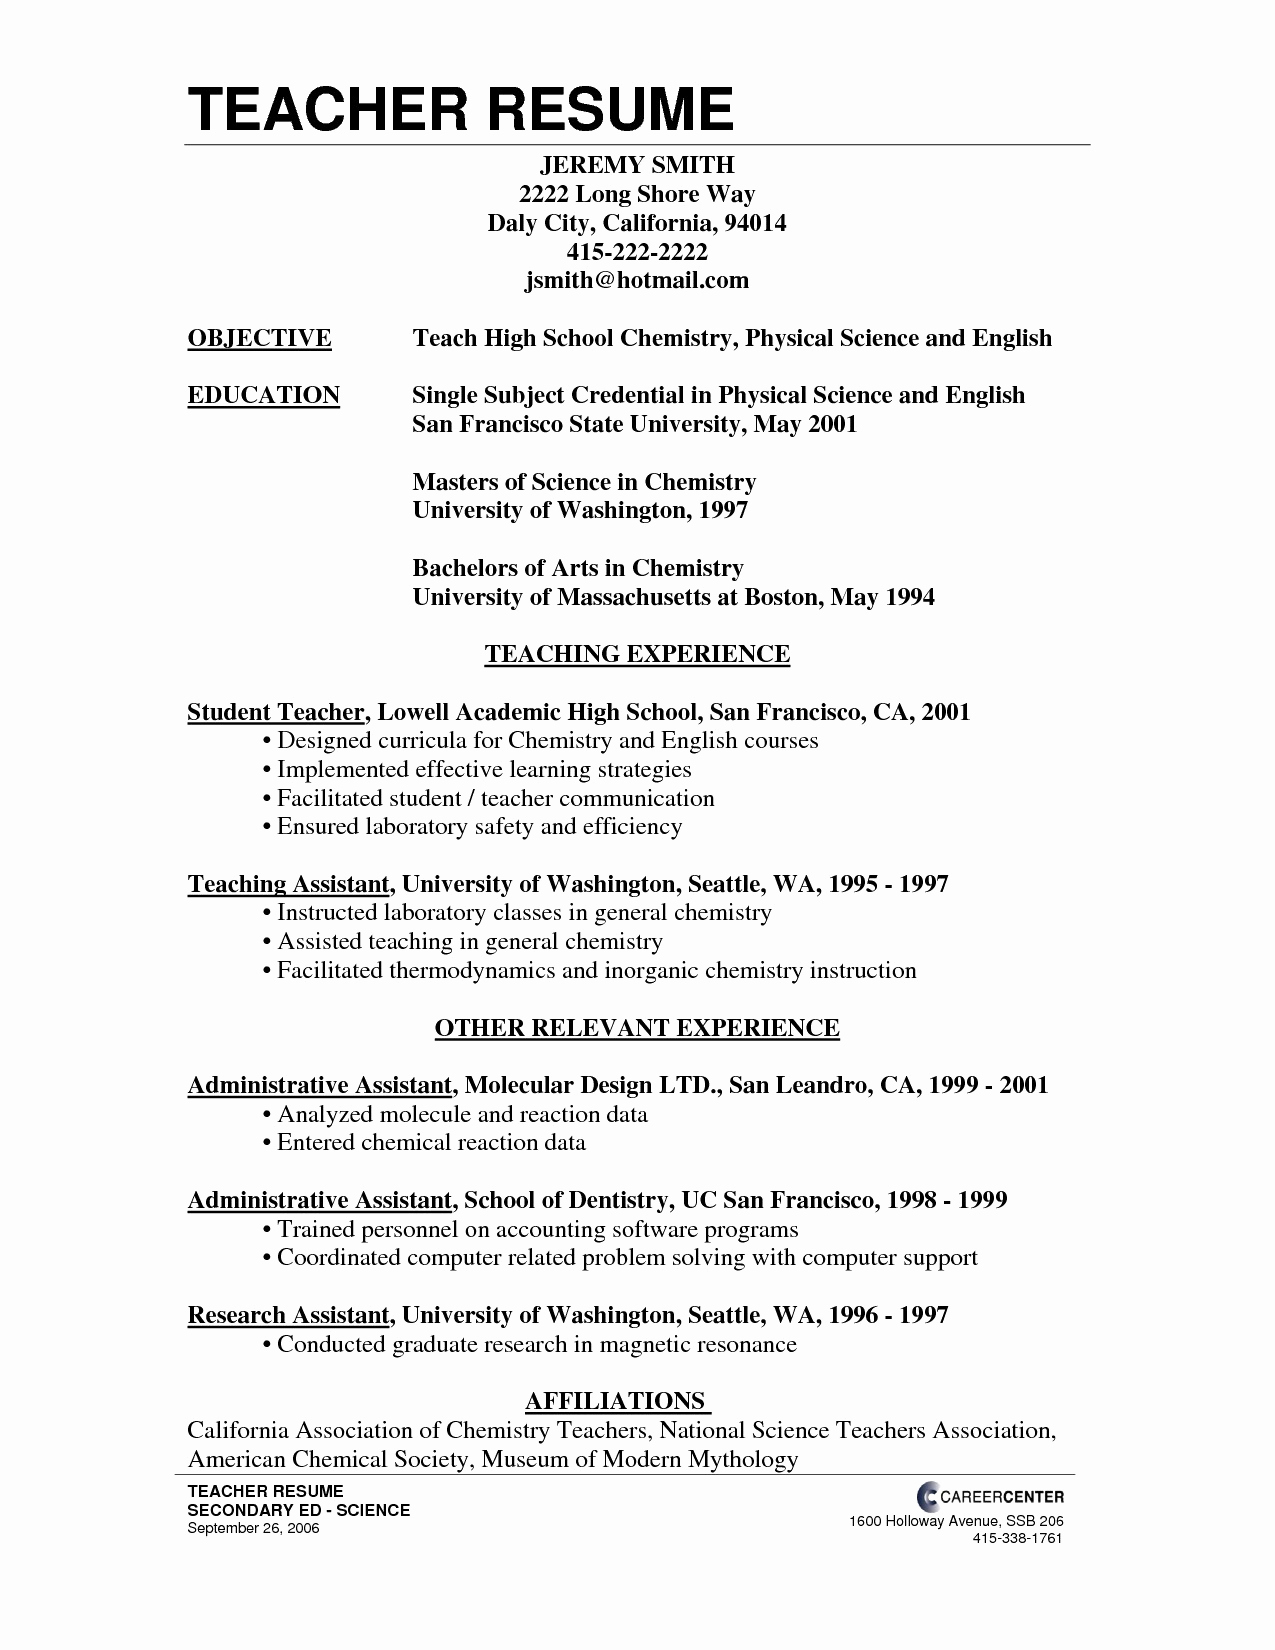 Program Introduction Letter Template - Resume Cover Letter Example New Free Cover Letter Templates Examples